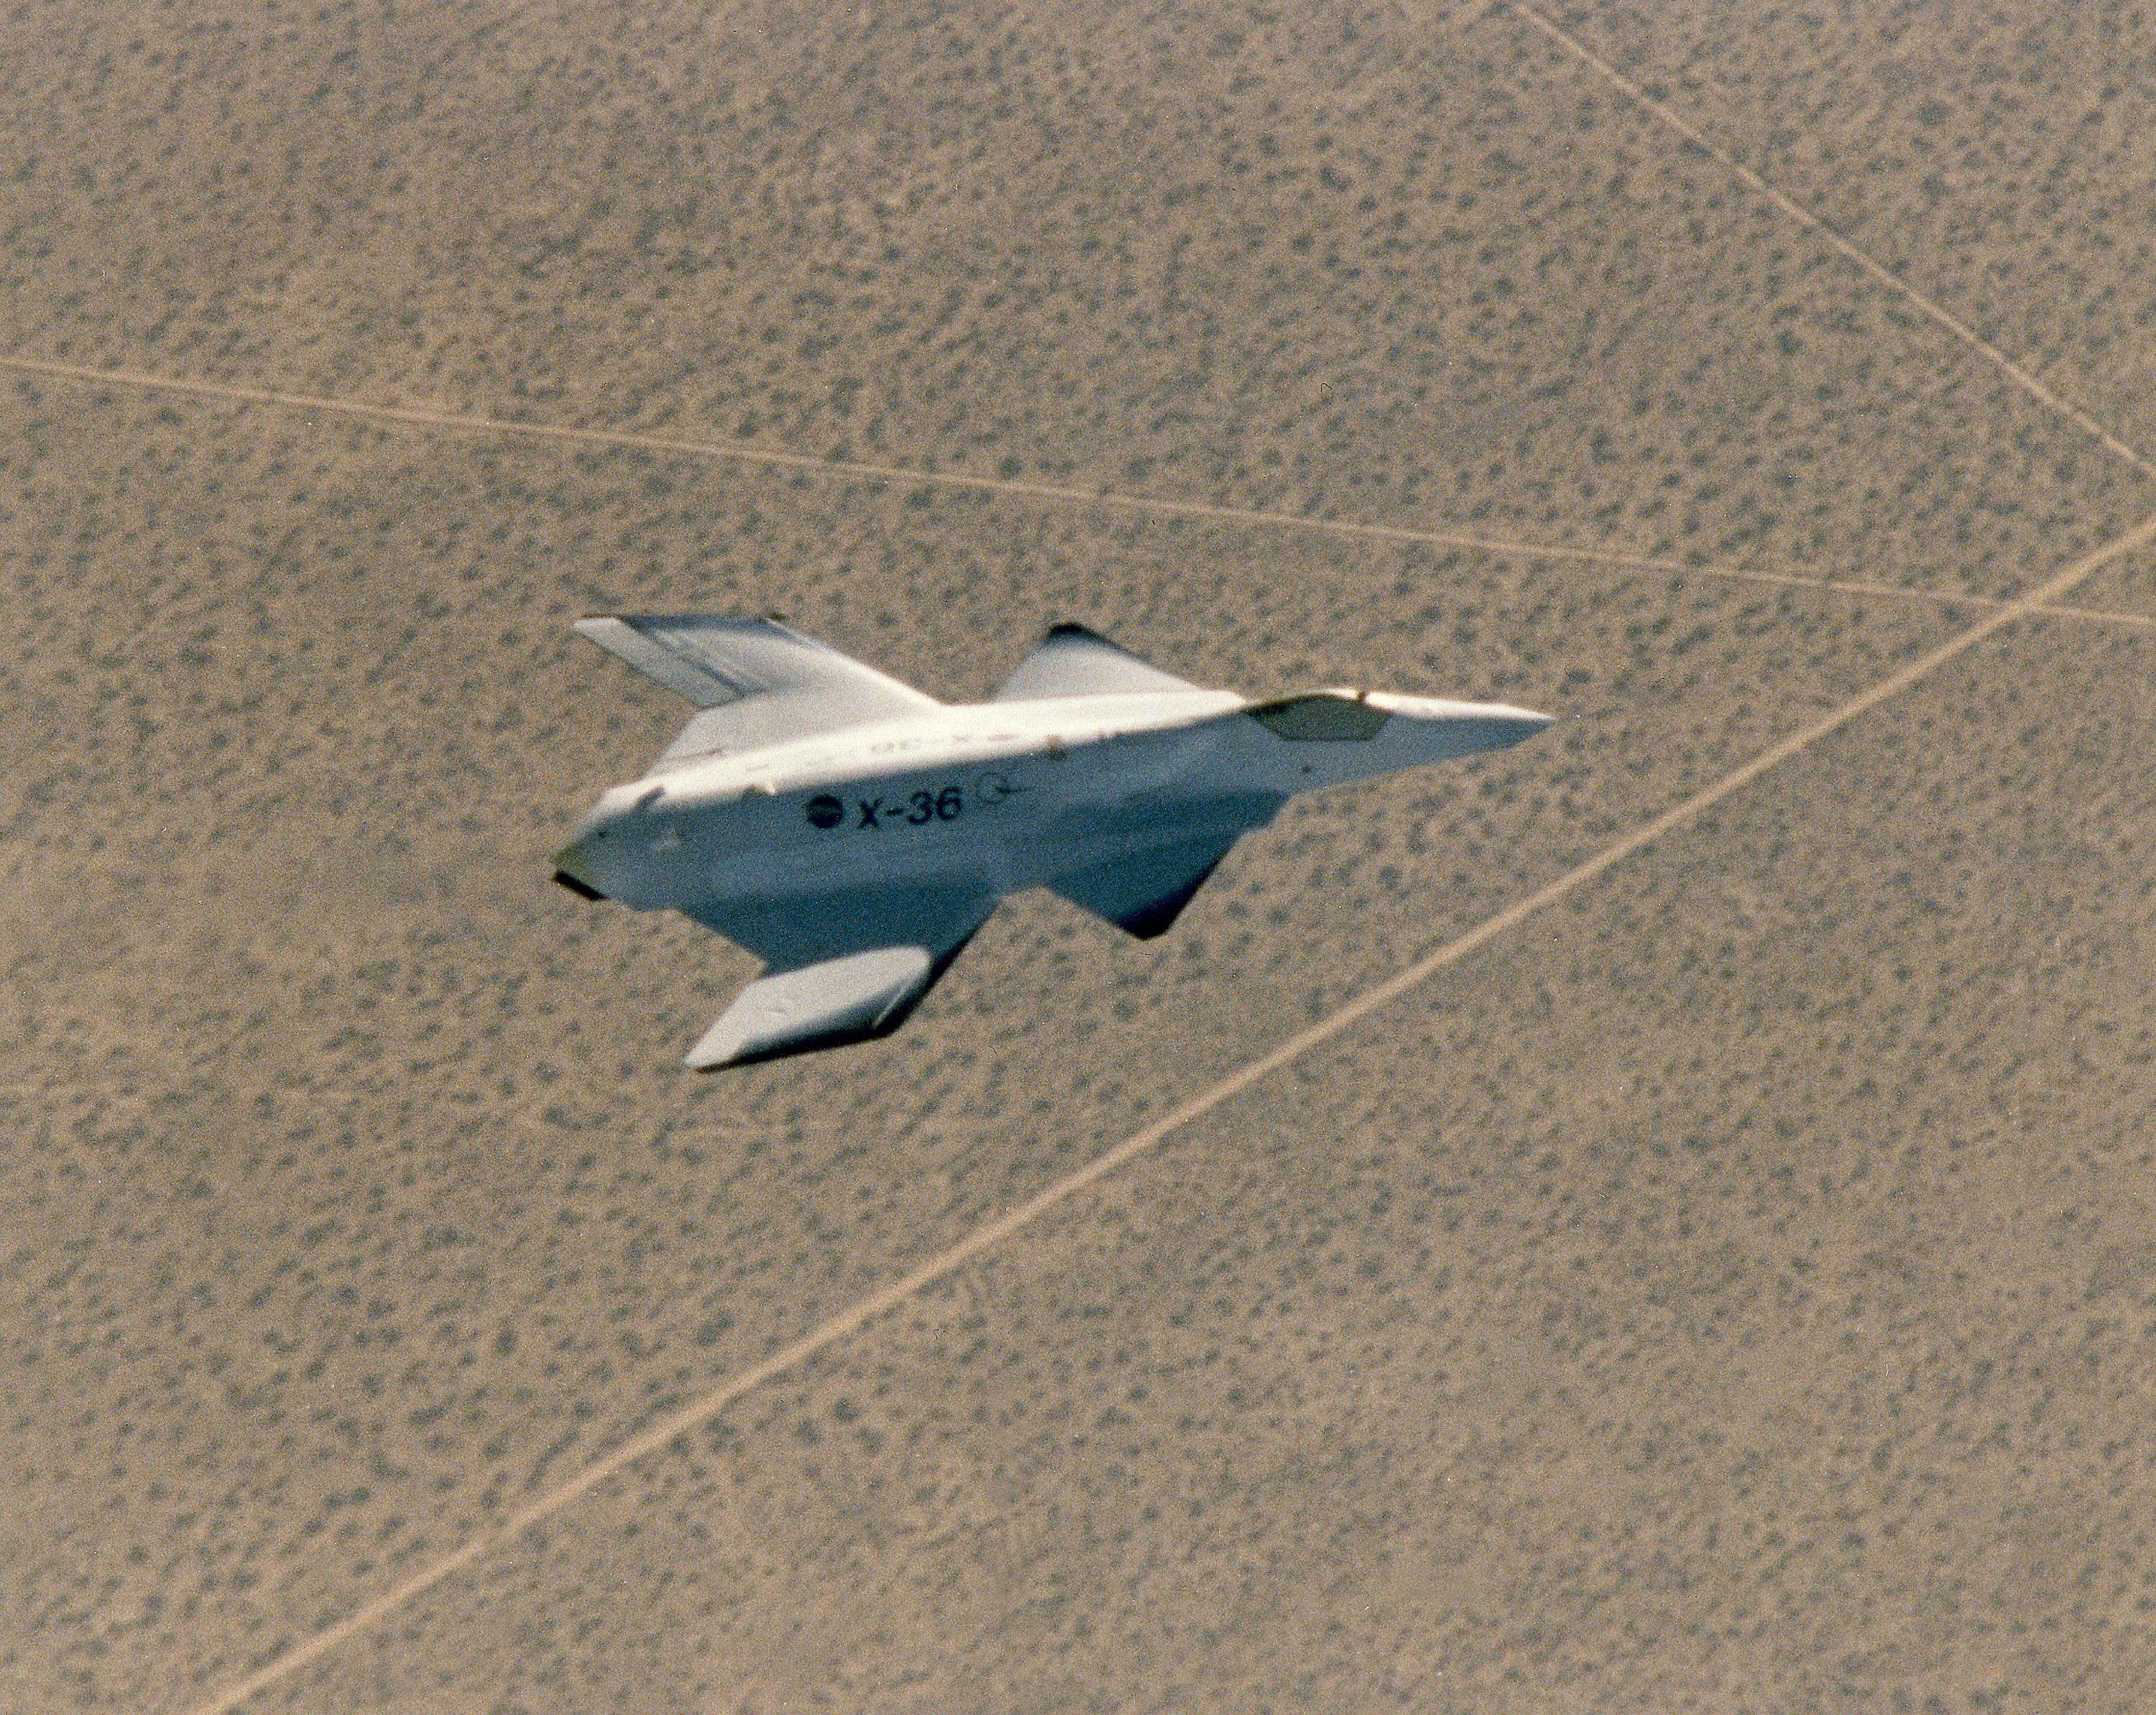 nasa fighter aircraft - photo #6